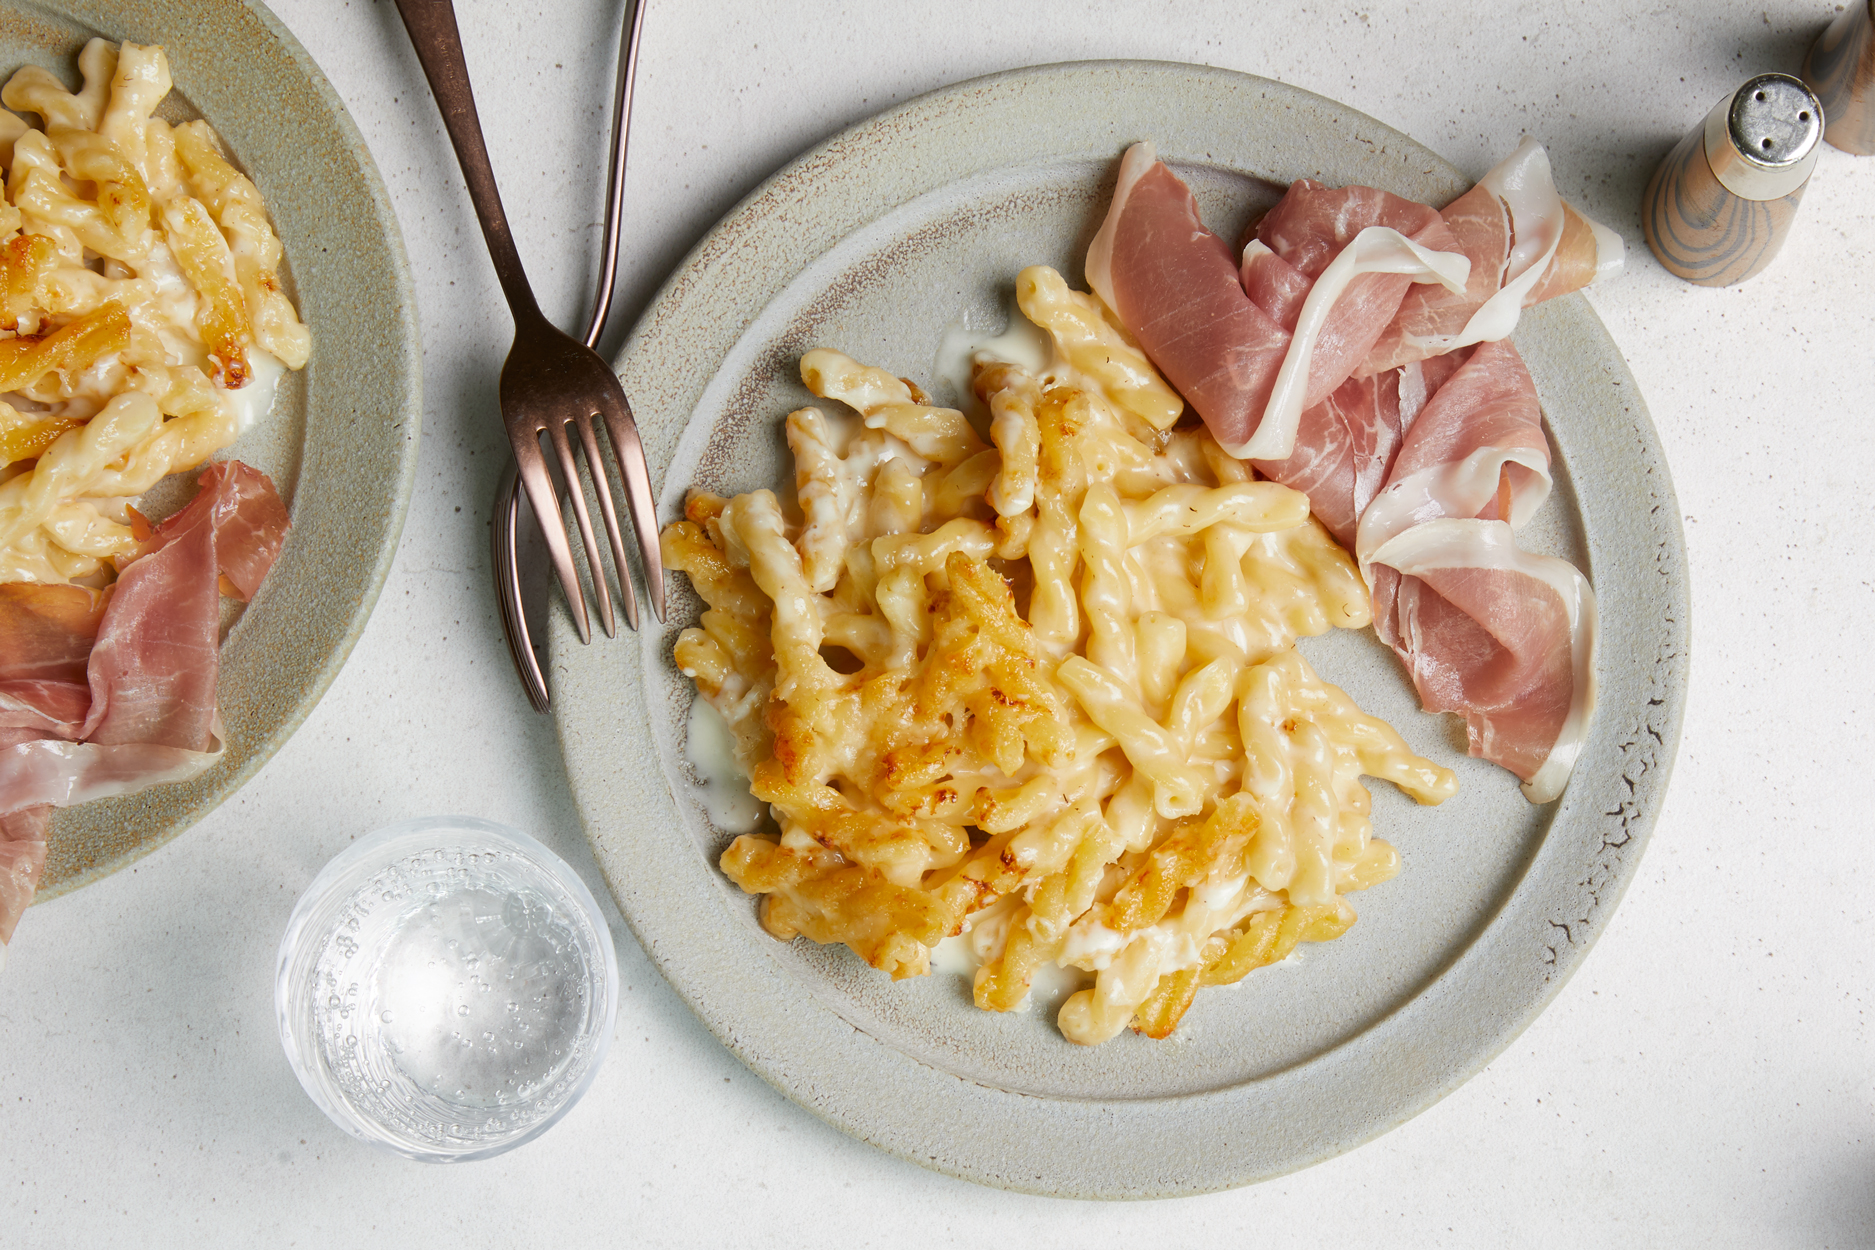 Creamy Baked Pasta with Gruyère and Prosciutto